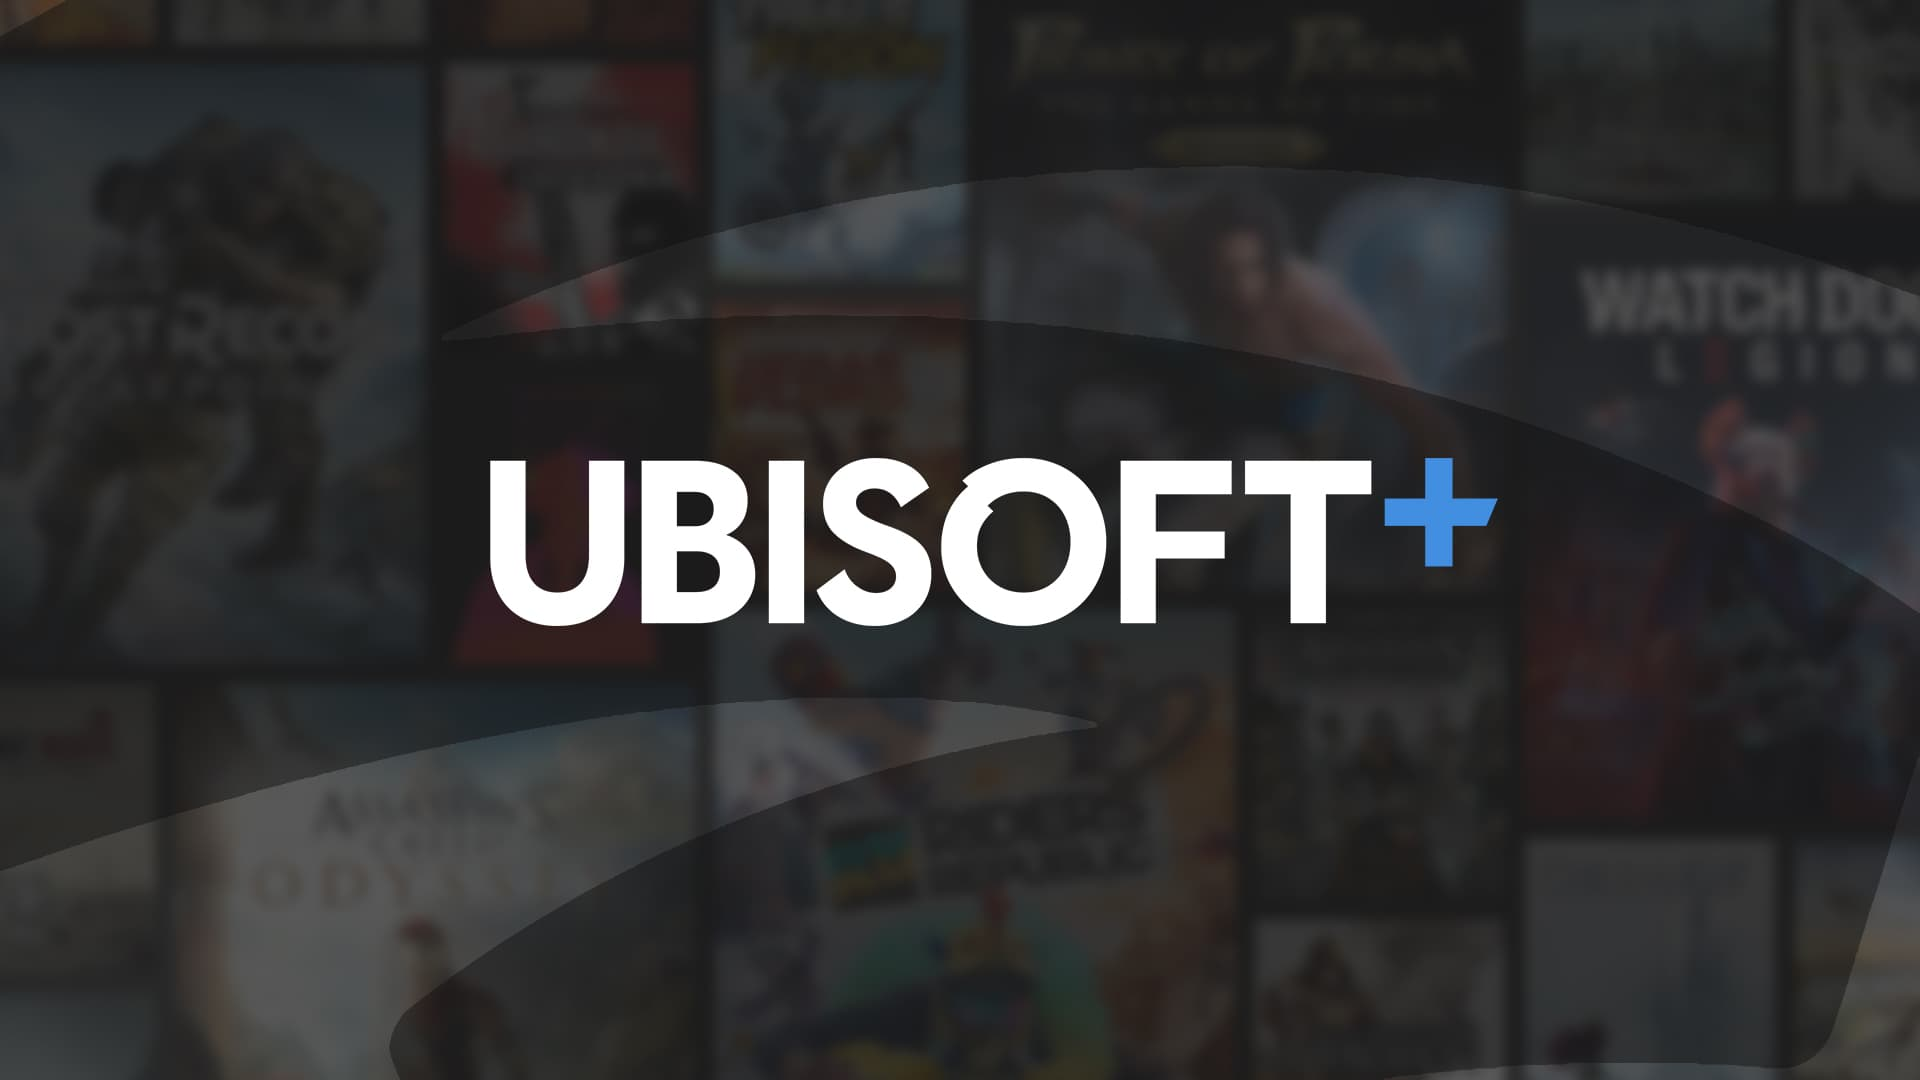 You can now subscribe to Ubisoft+ from directly within Google Stadia's app and web app